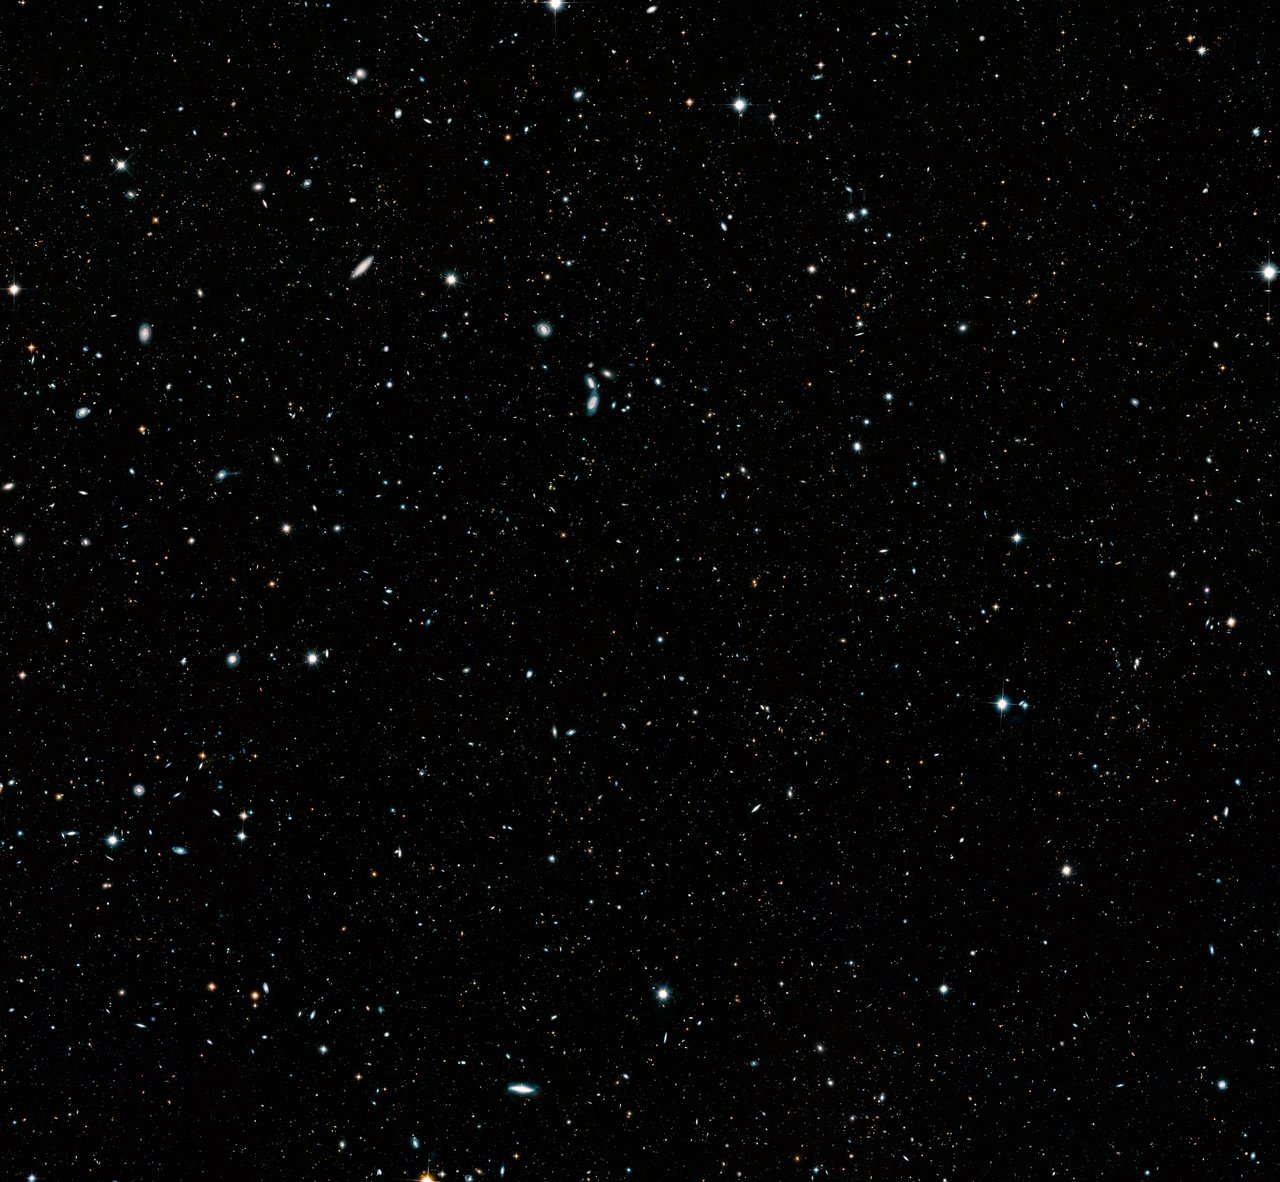 NASA fits 265,000 galaxies into a single 'Hubble Legacy Field' image